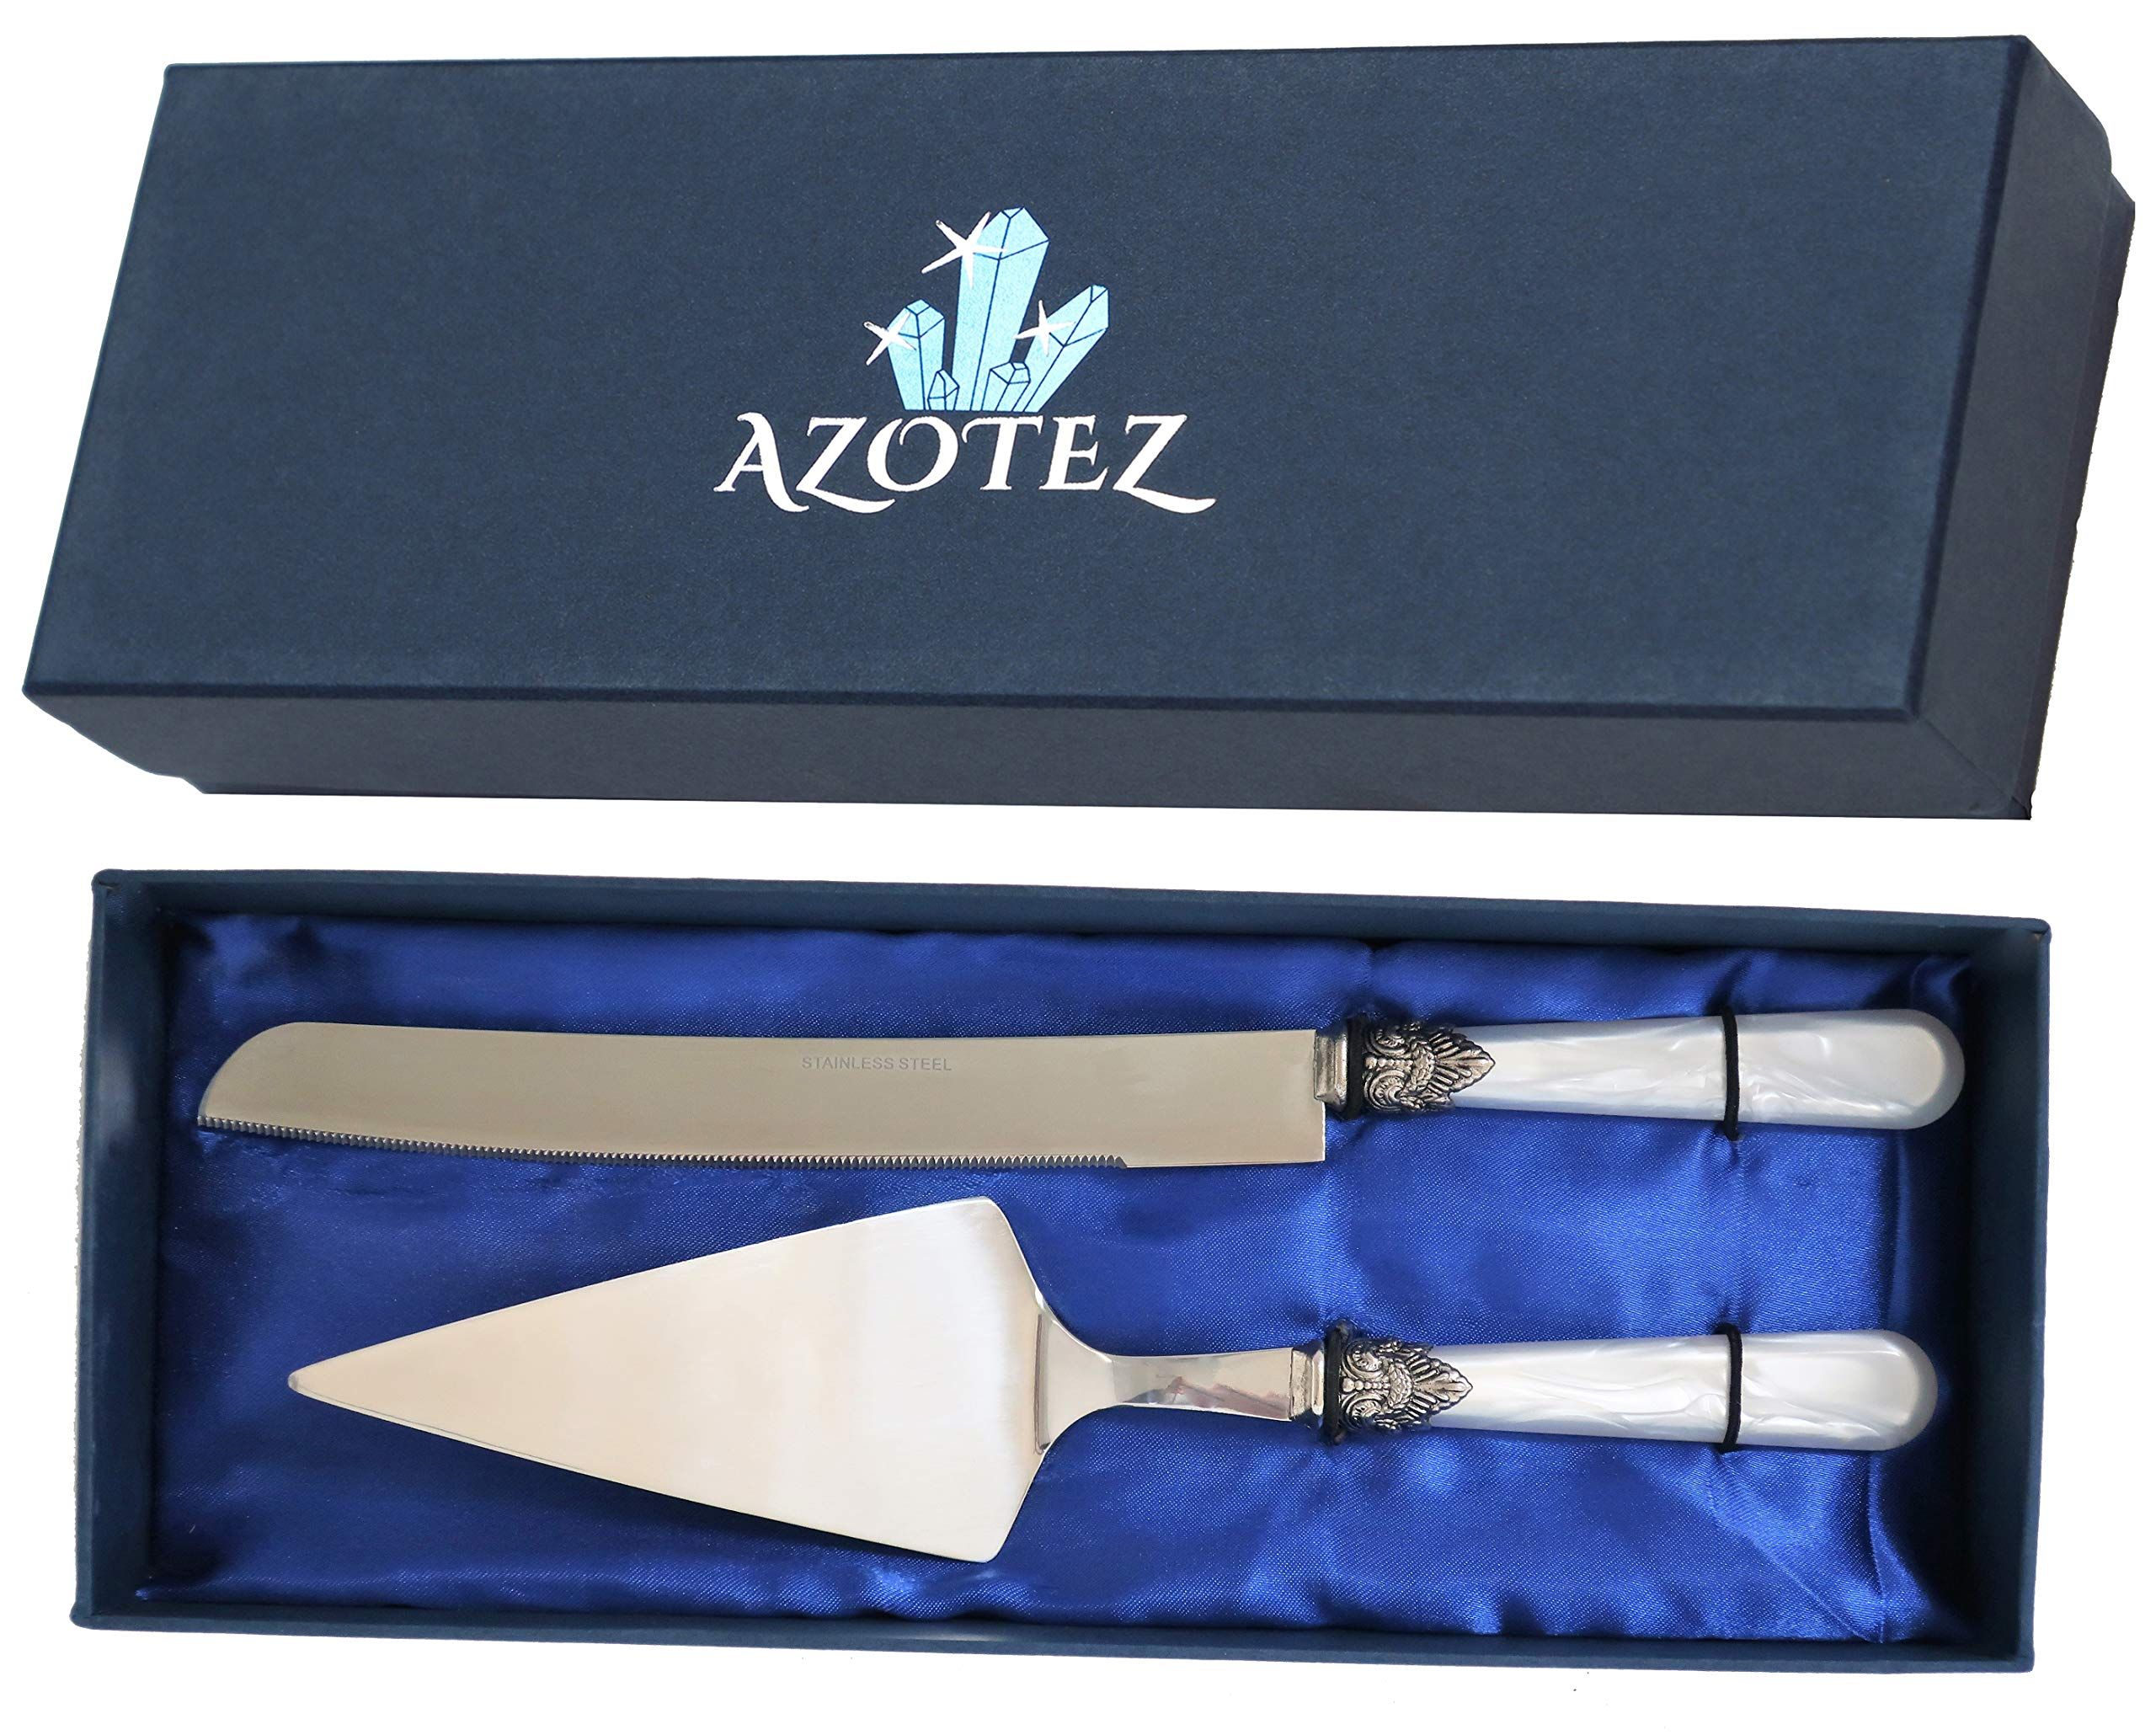 AZOTEZ Cake Server and Knife Set - Cake Cutter and Server or Pie Cutter. Wedding Cake Knife and Server Set Suitable for Cutting Cakes at Weddings, Birthdays or Anniversaries by AZOTEZ